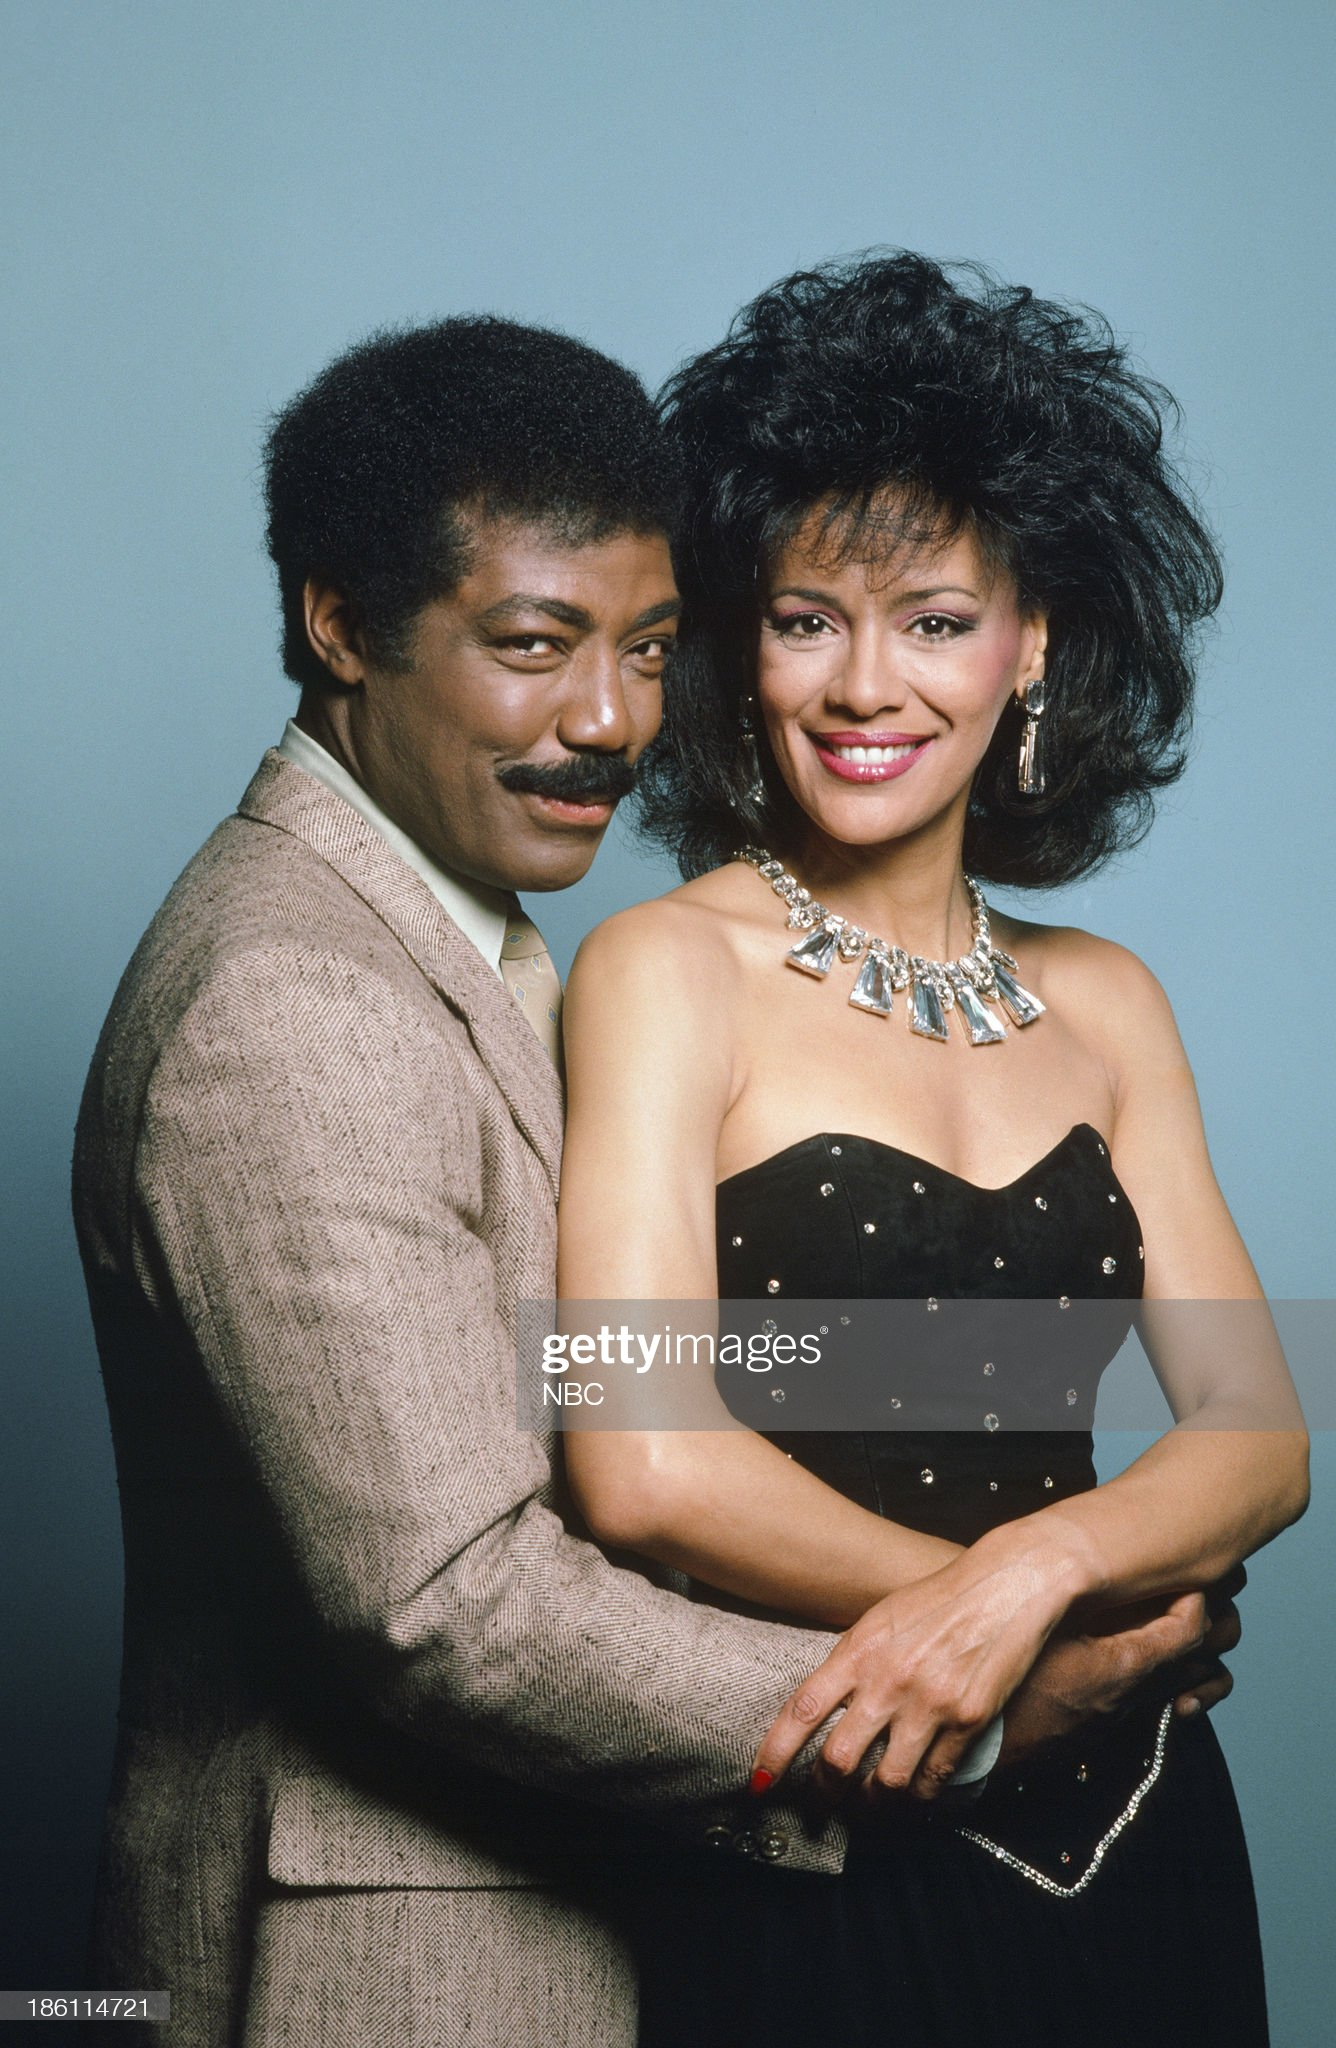 season-21-pictured-james-reynolds-as-abe-carver-marilyn-mccoo-as-picture-id186114721